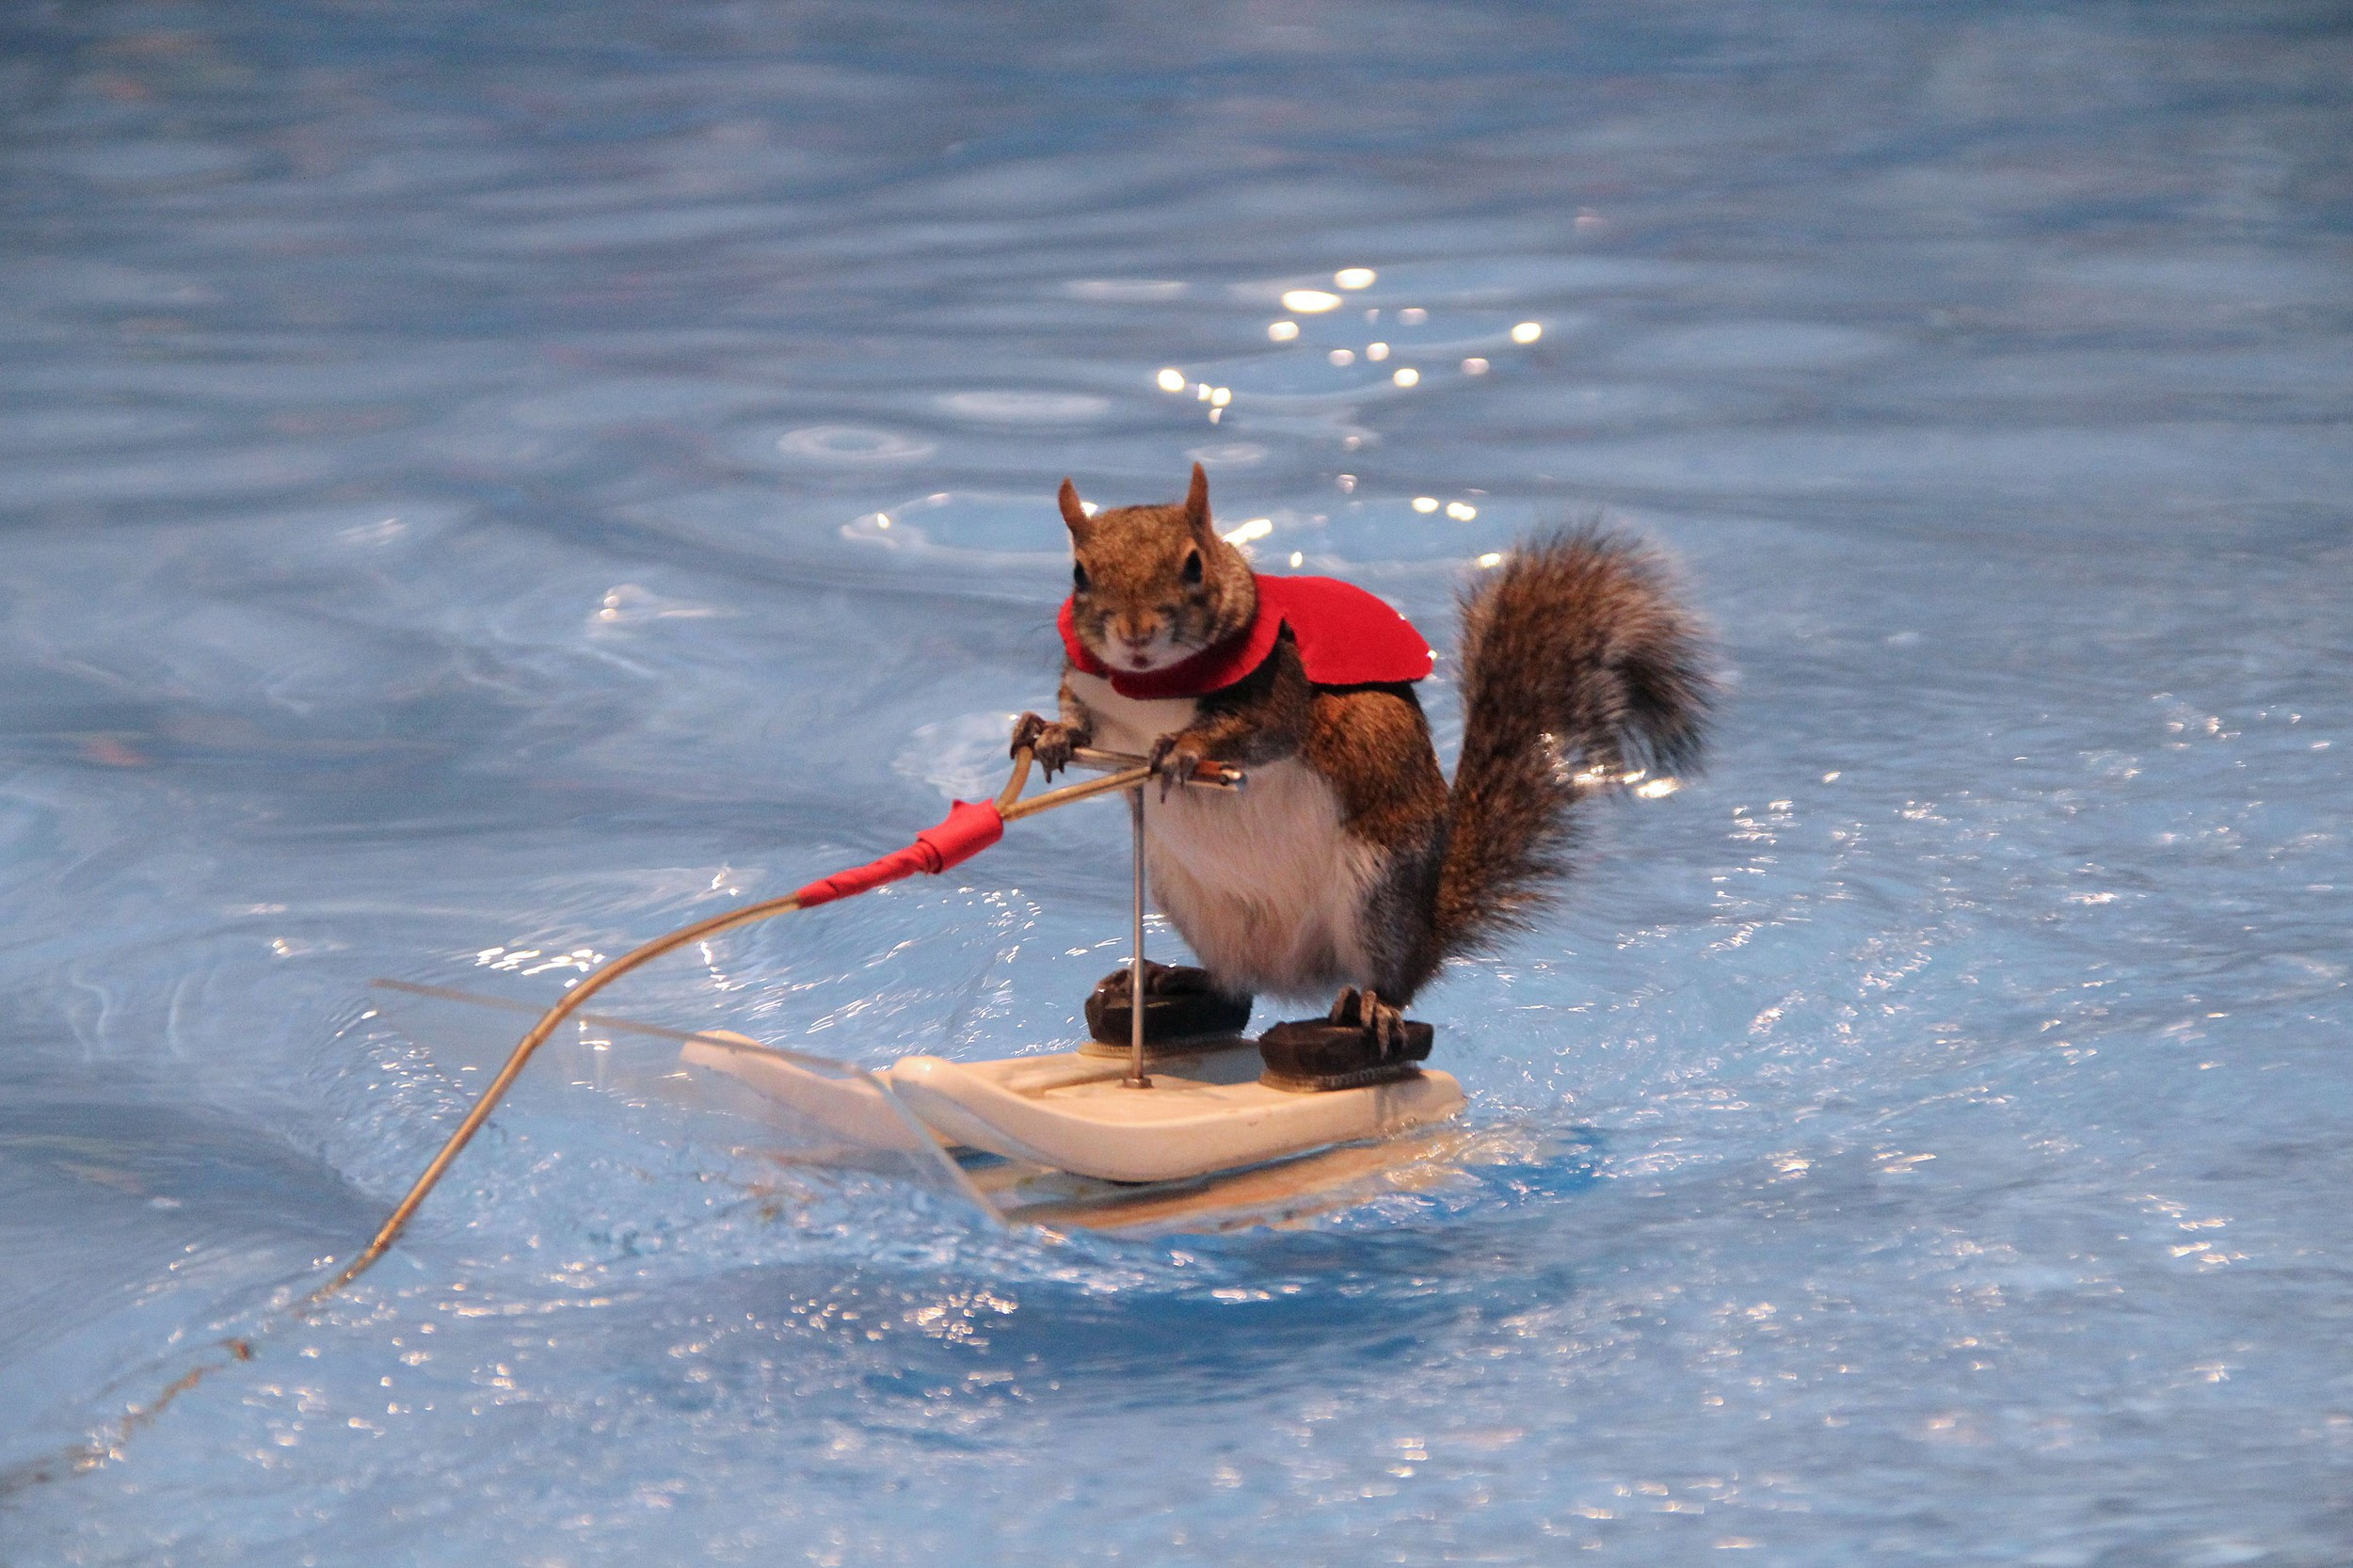 Don't Miss Twiggy the Water-Skiing Squirrel at Ribfest 2017!